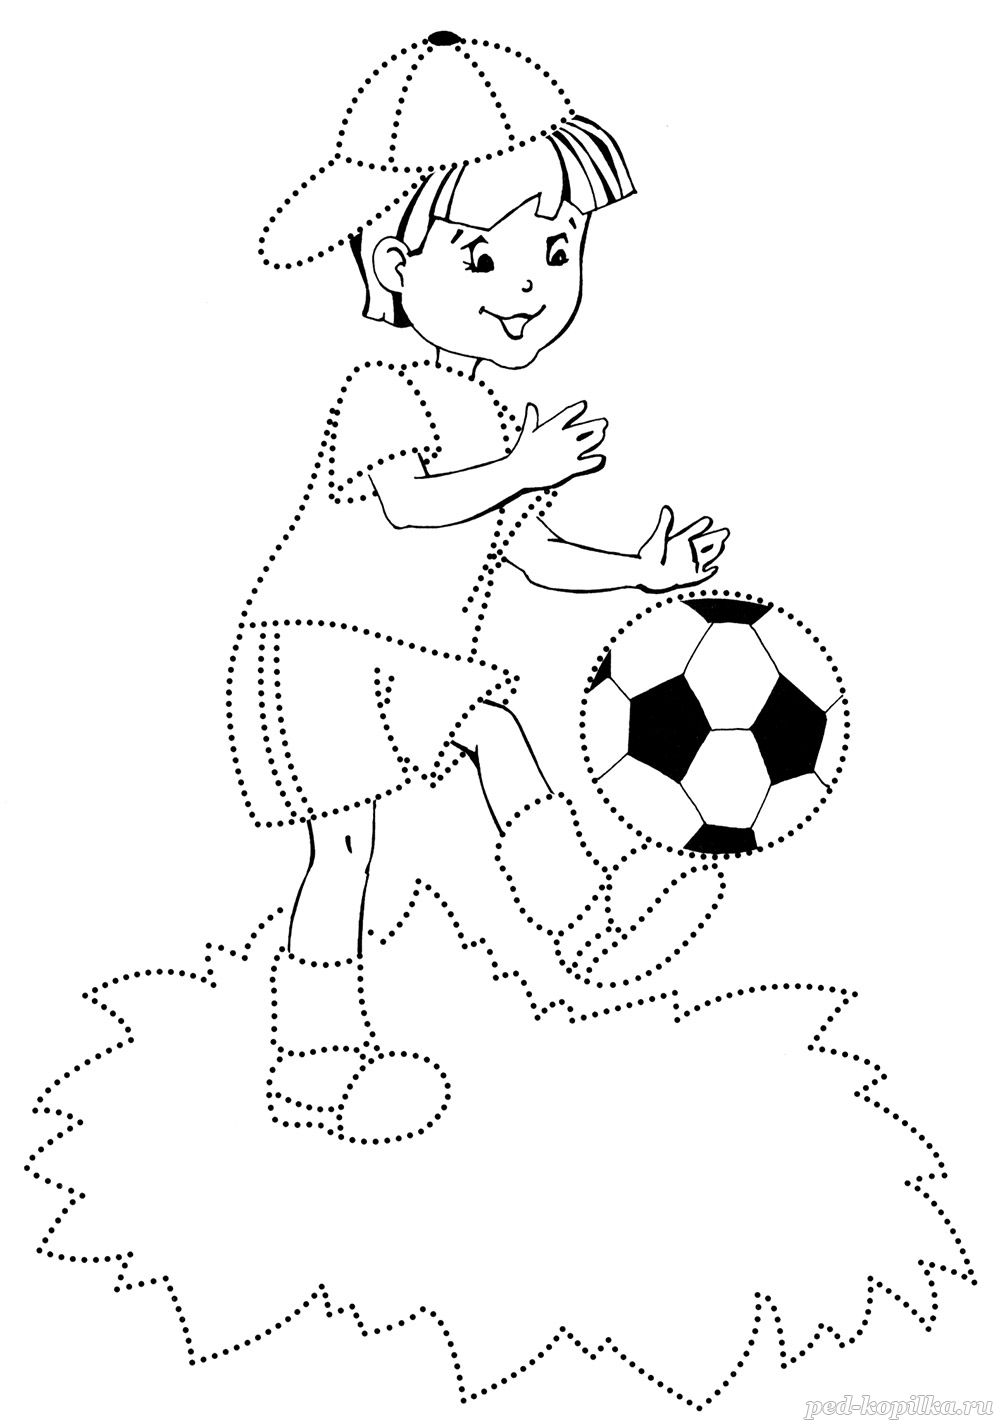 Soccer Coloring Pages for childrens